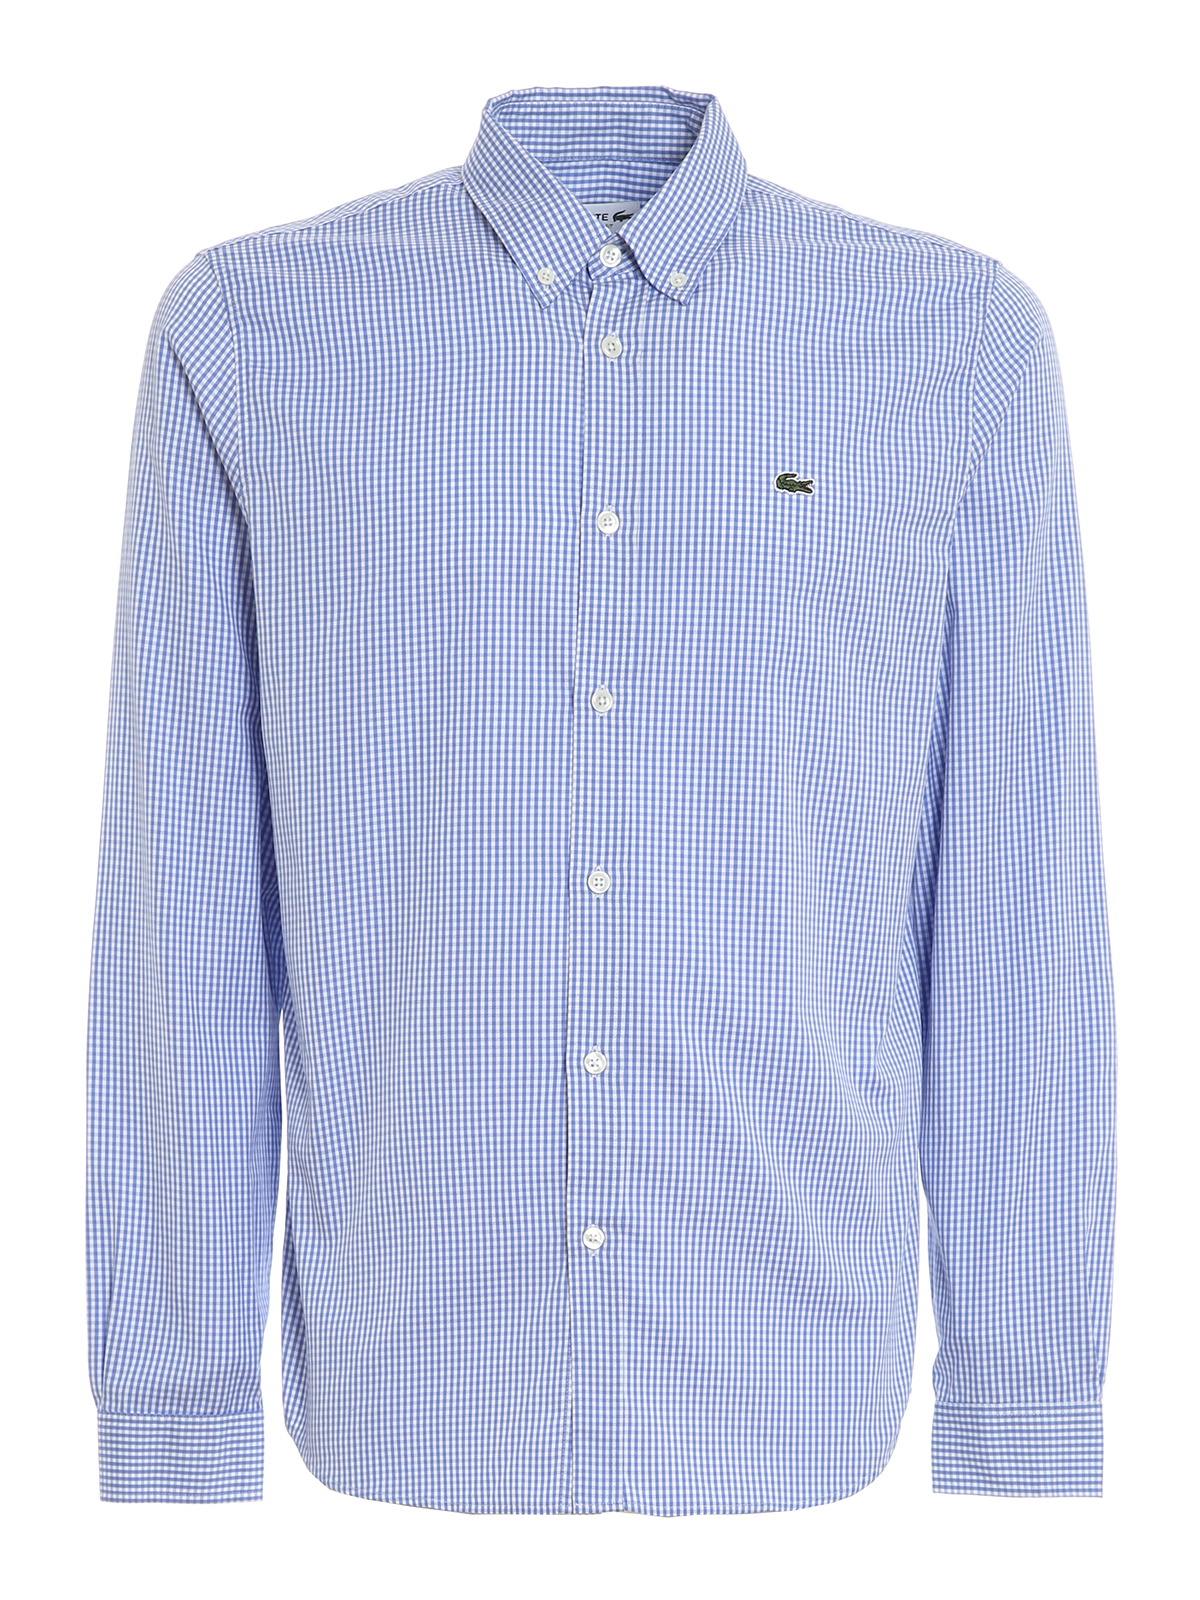 Lacoste Cottons CHECKED PREMIUM COTTON SHIRT